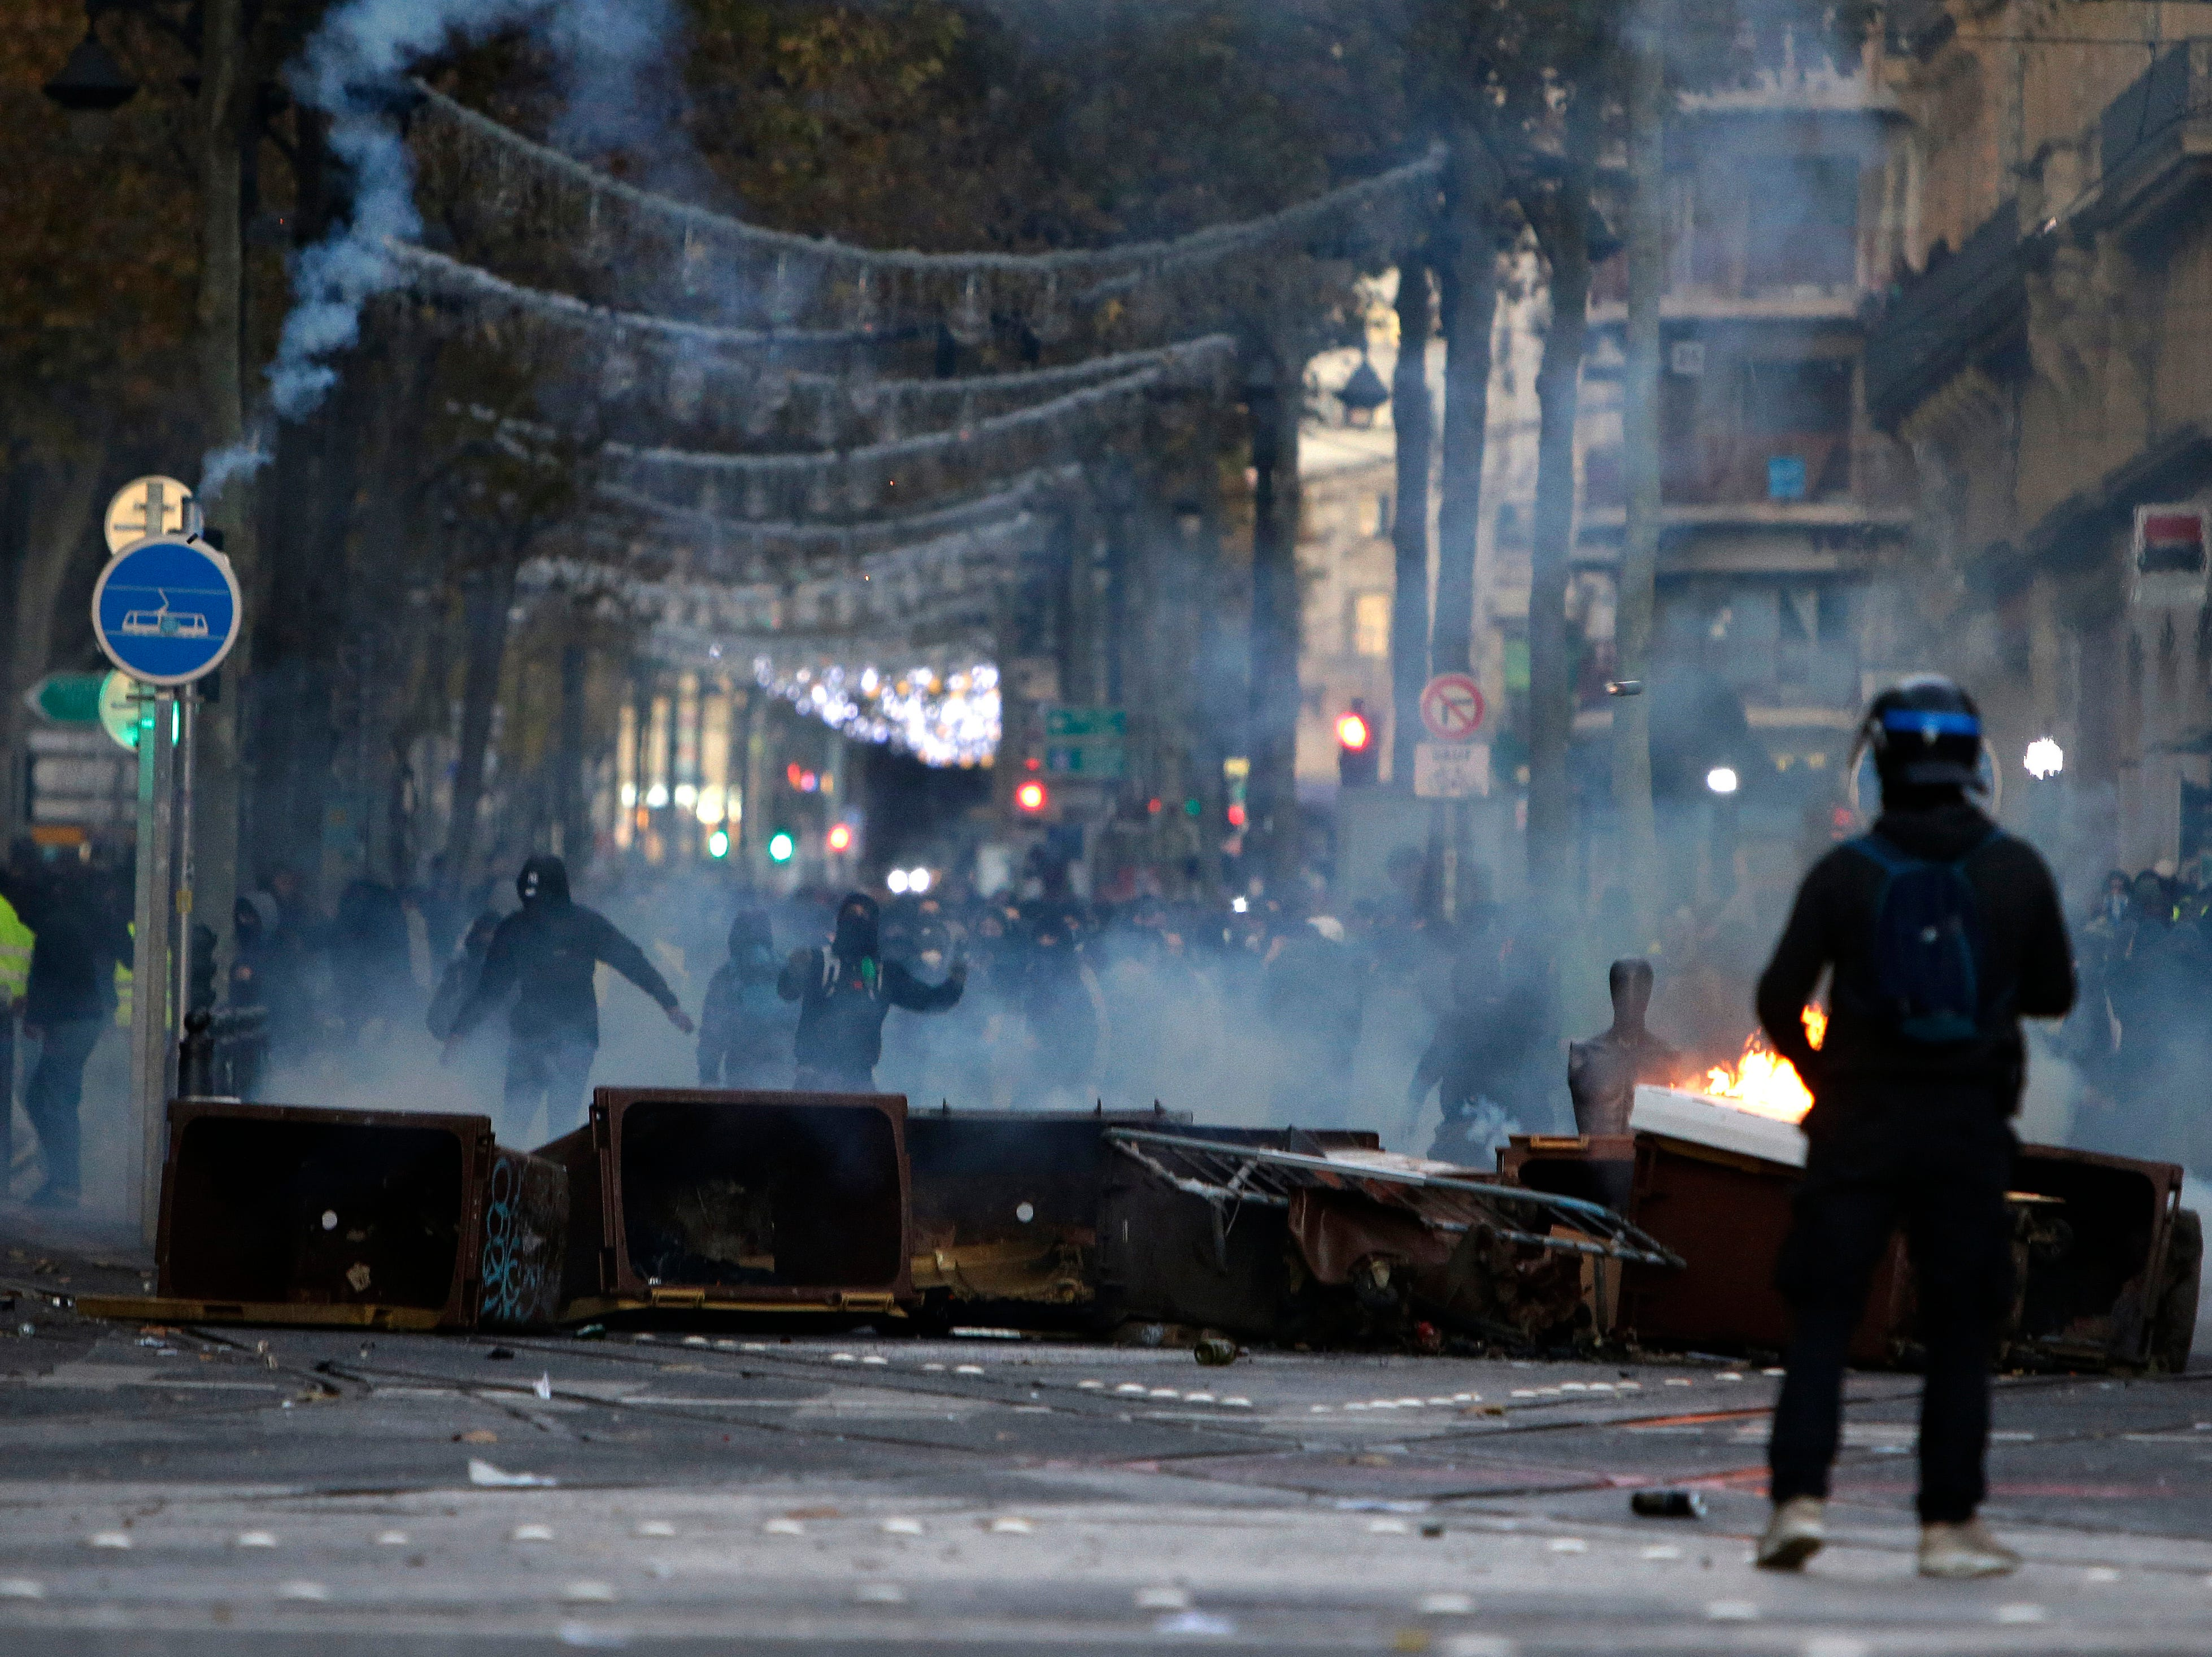 Demonstrators stand behind a burning barricade during clashes, Saturday, Dec. 8, 2018, in Marseille, southern France. The rumble of armored police trucks and the hiss of tear gas filled central Paris on Saturday, as French riot police fought to contain thousands of yellow-vested protesters venting their anger against the government in a movement that has grown more violent by the week.